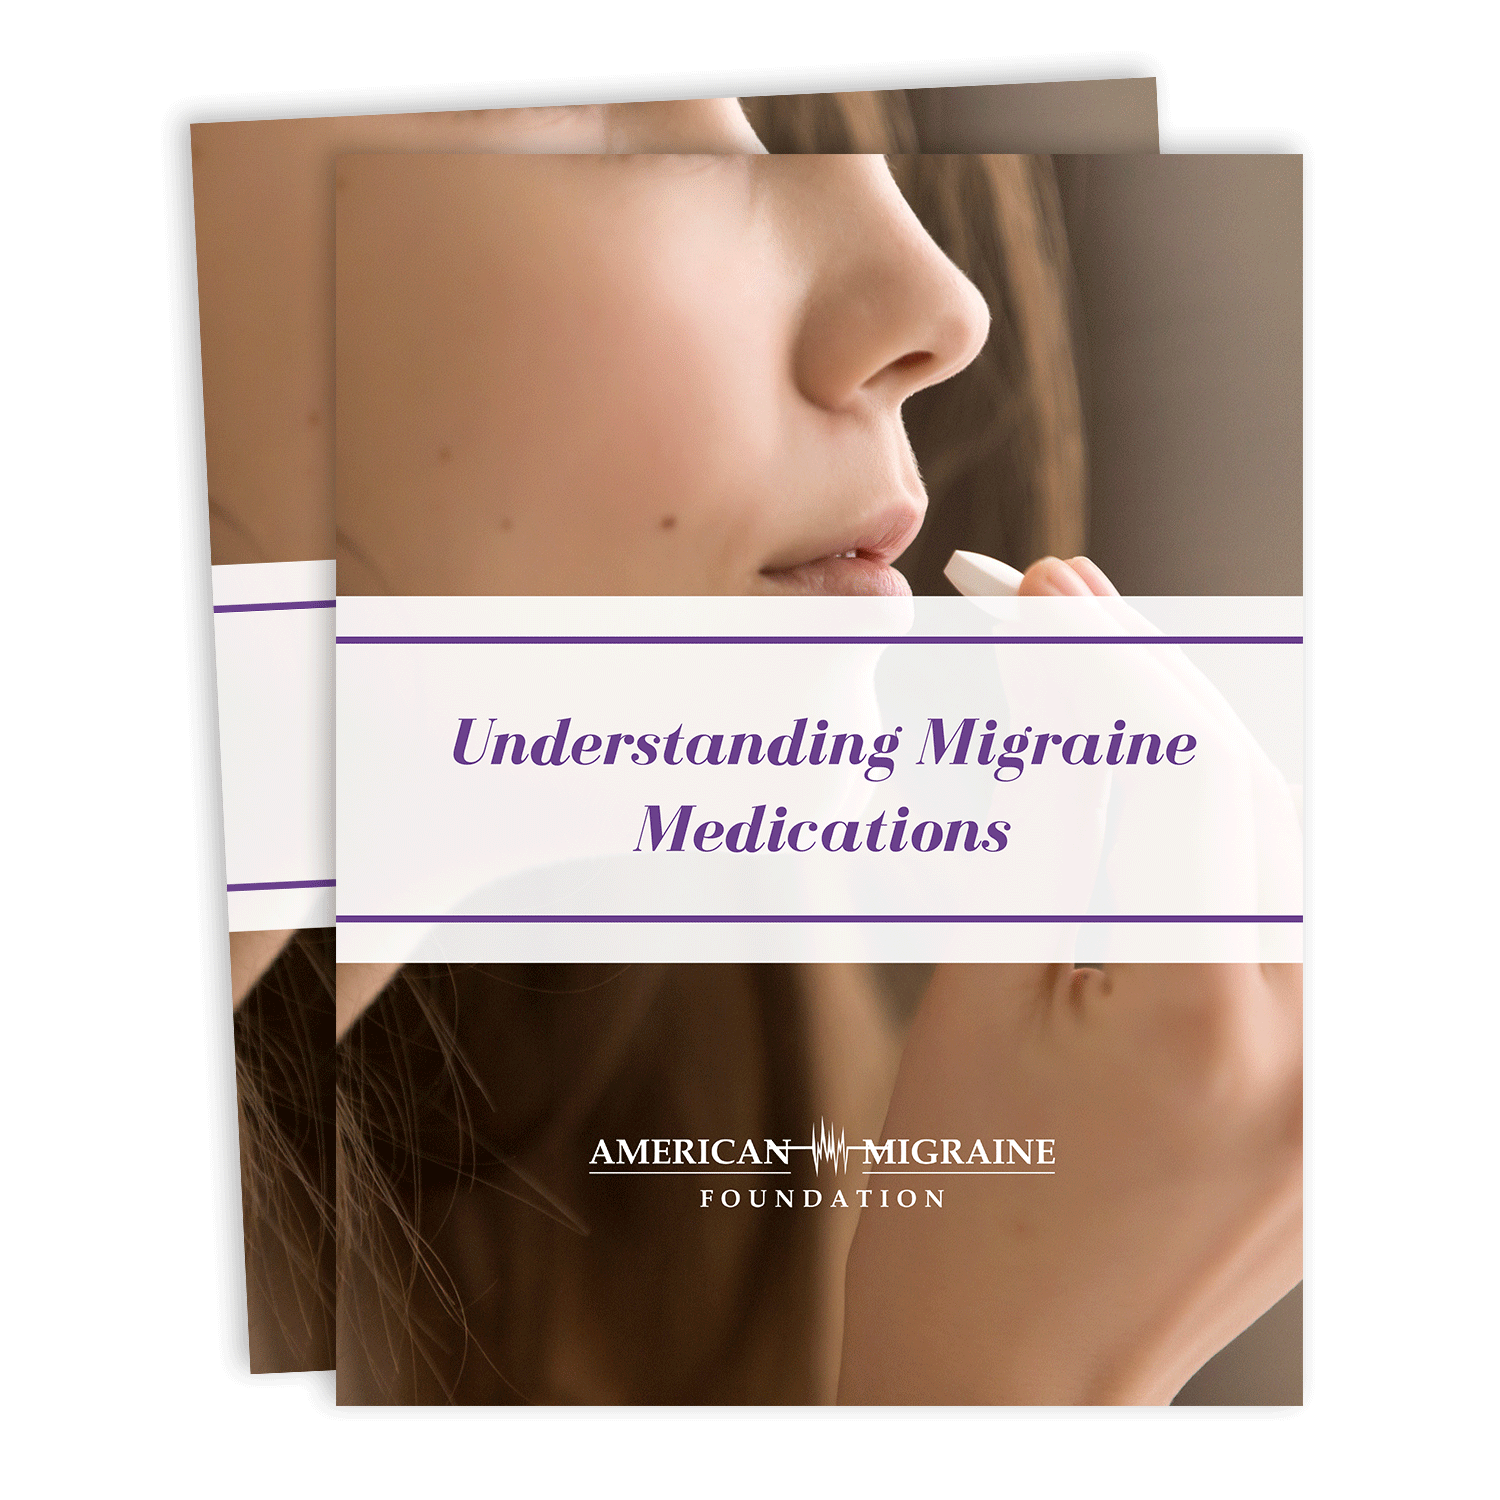 Understanding Migraine Medications